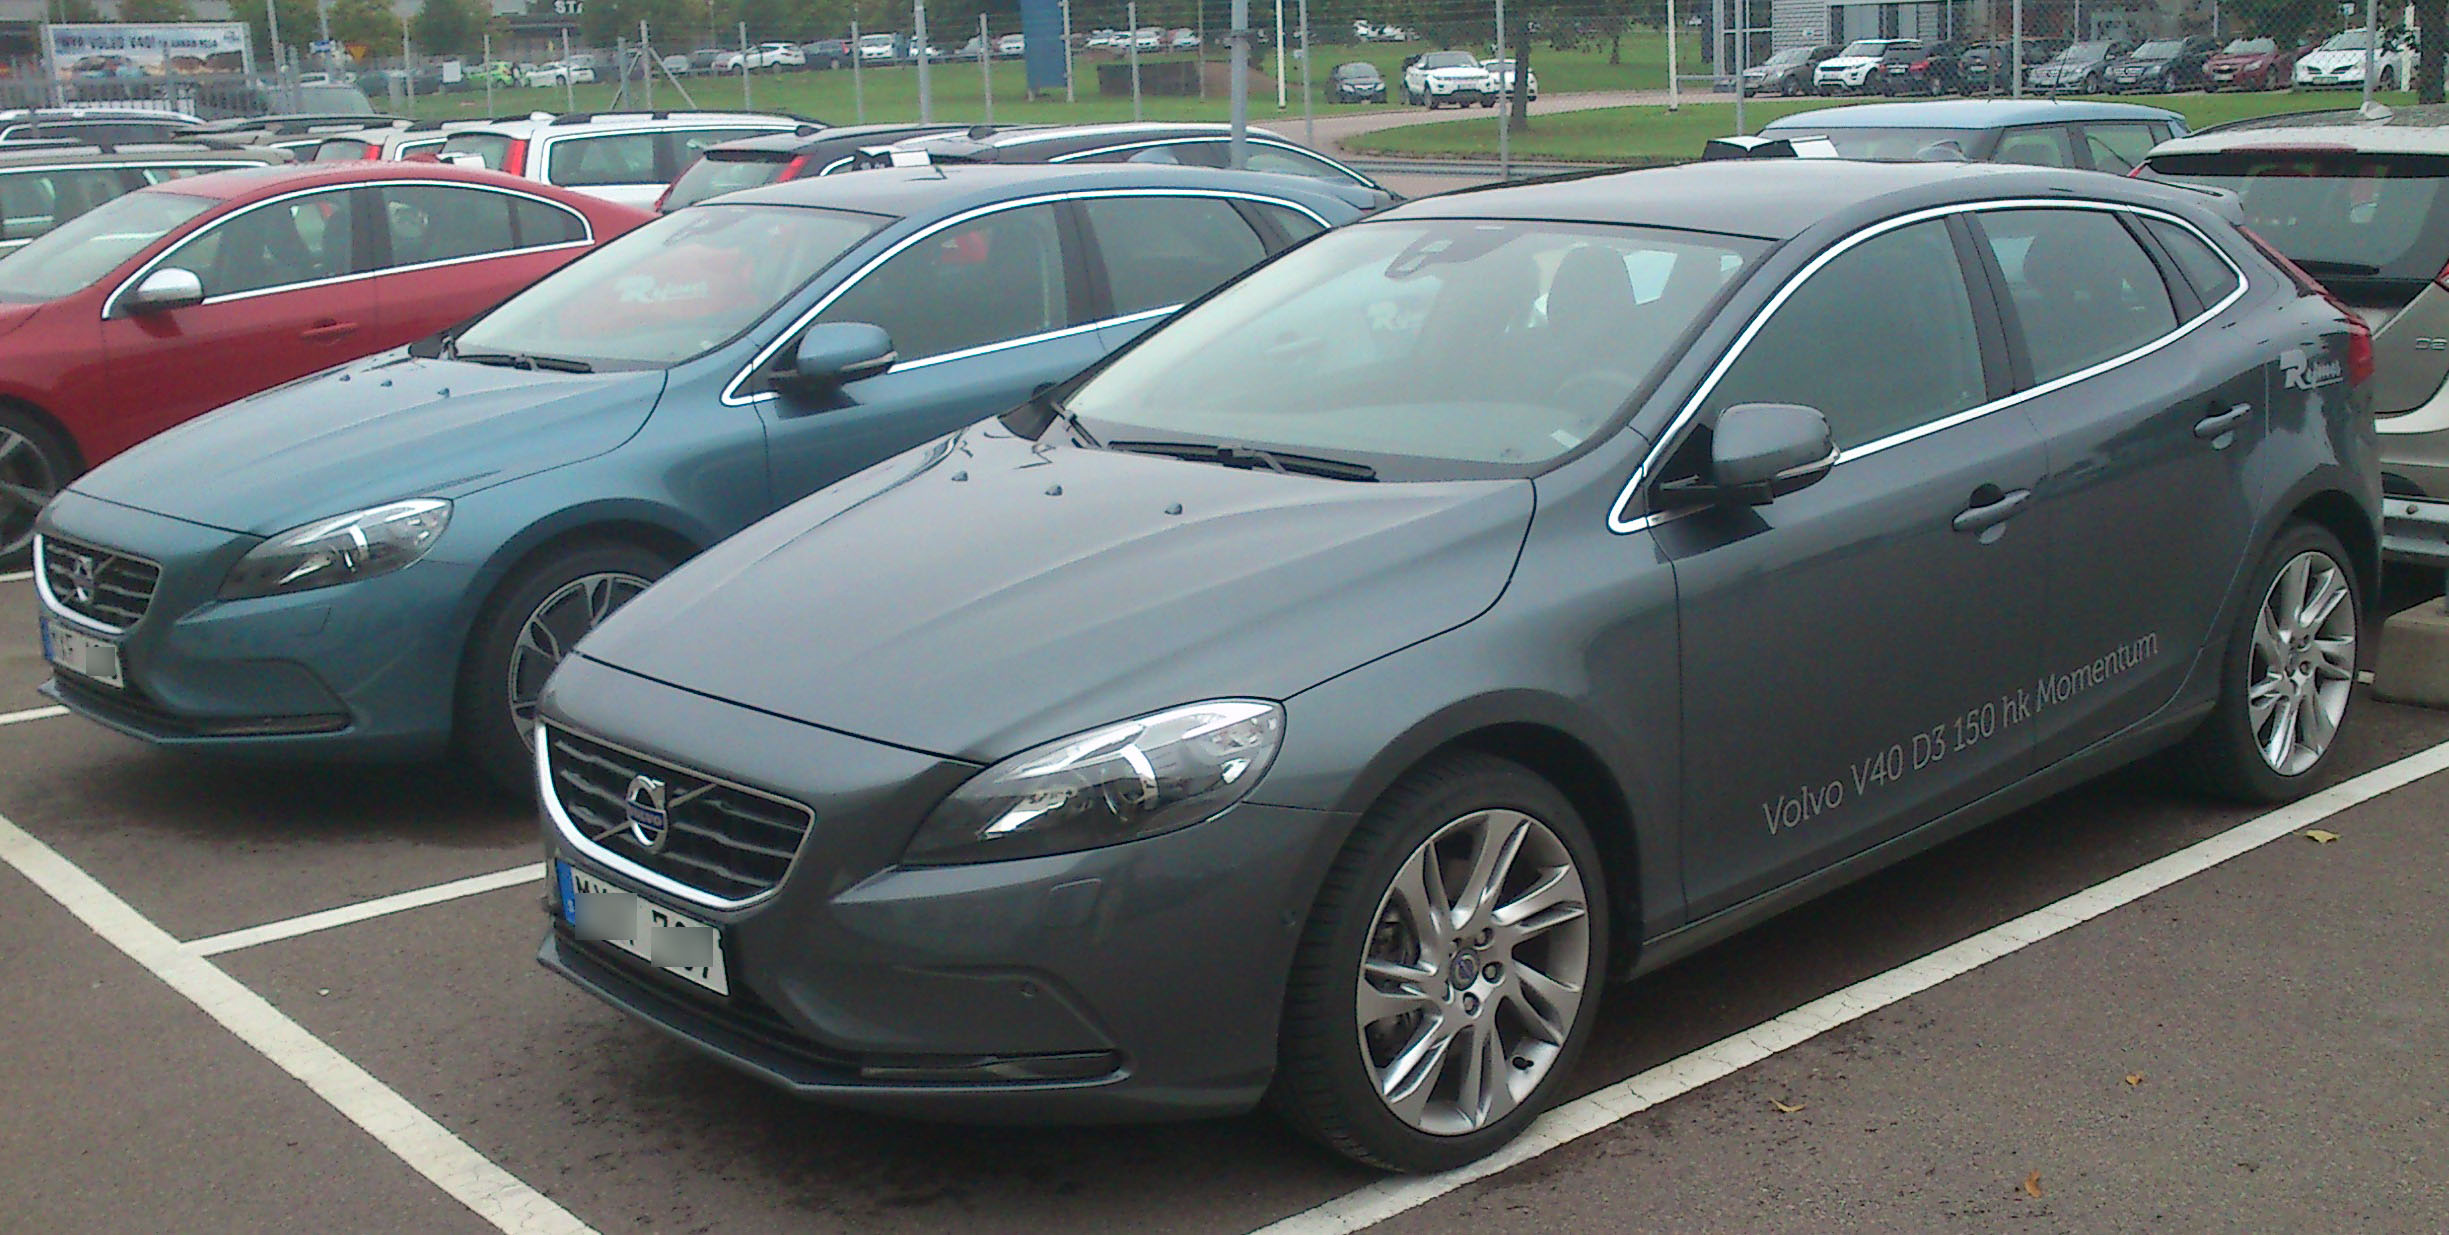 File 2012 Volvo V40 Fl Jpg Wikimedia Commons